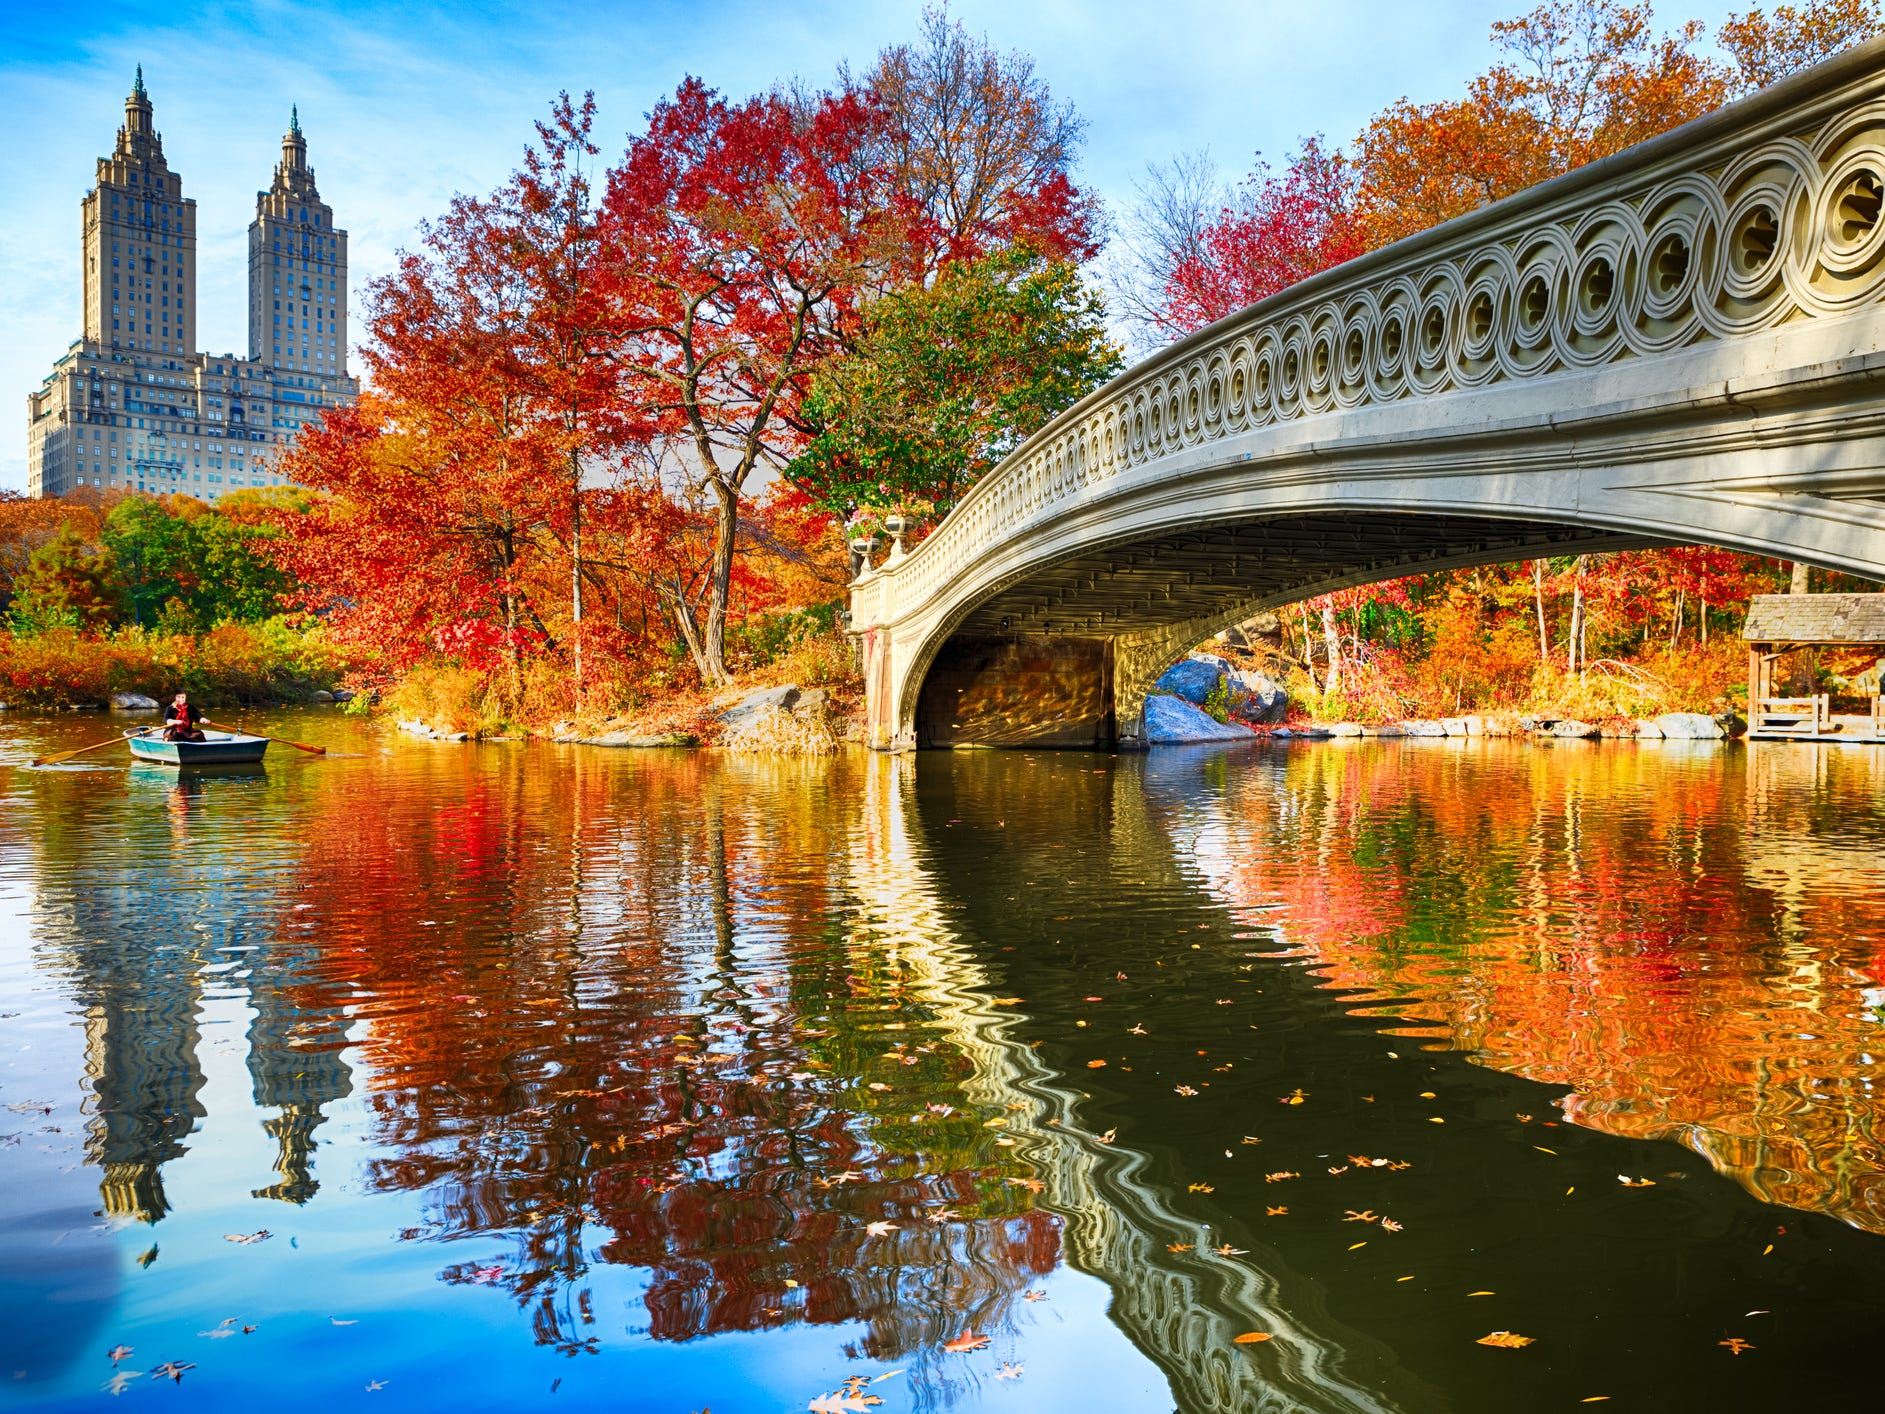 No. 2: Central Park in New York City.